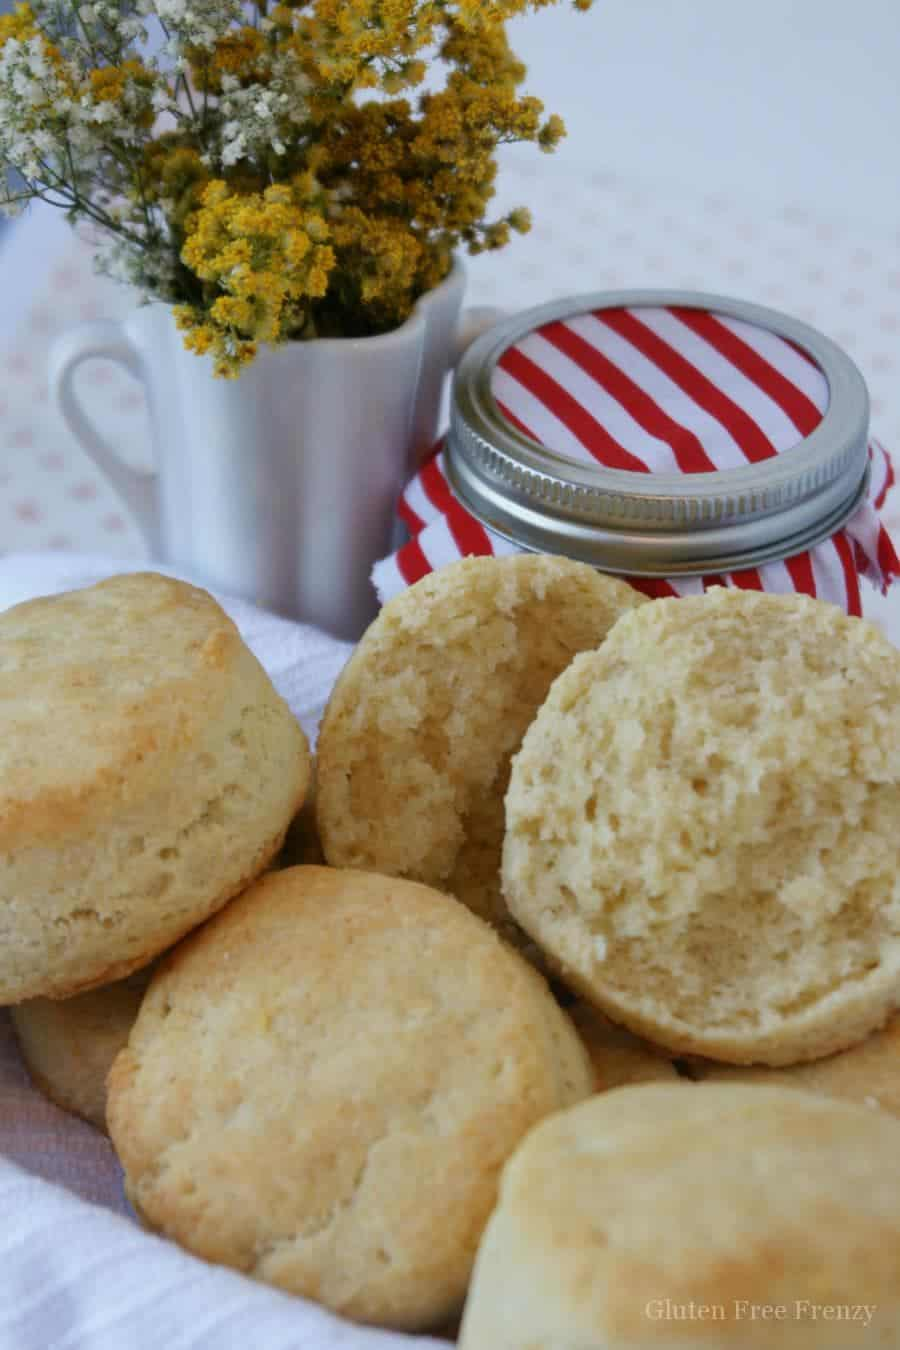 Gluten-free buttermilk biscuits so light and fluffy you will won't believe it! Live gluten-free on a budget and with full flavor thanks to this new cookbook.